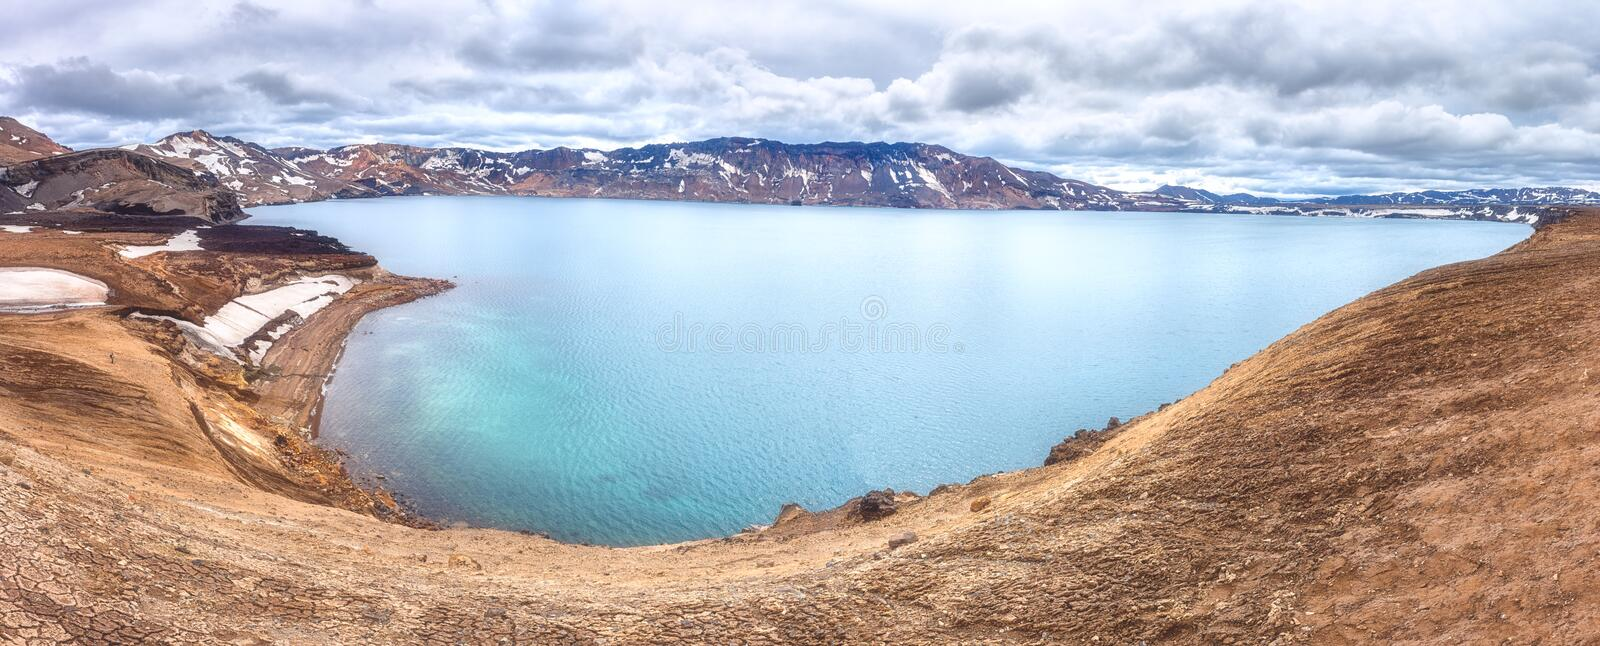 Amazing nature landscape, Oskjuvatn lake in Askja caldera, highlands of Iceland. Scenic panoramic view, outdoor travel background stock photography